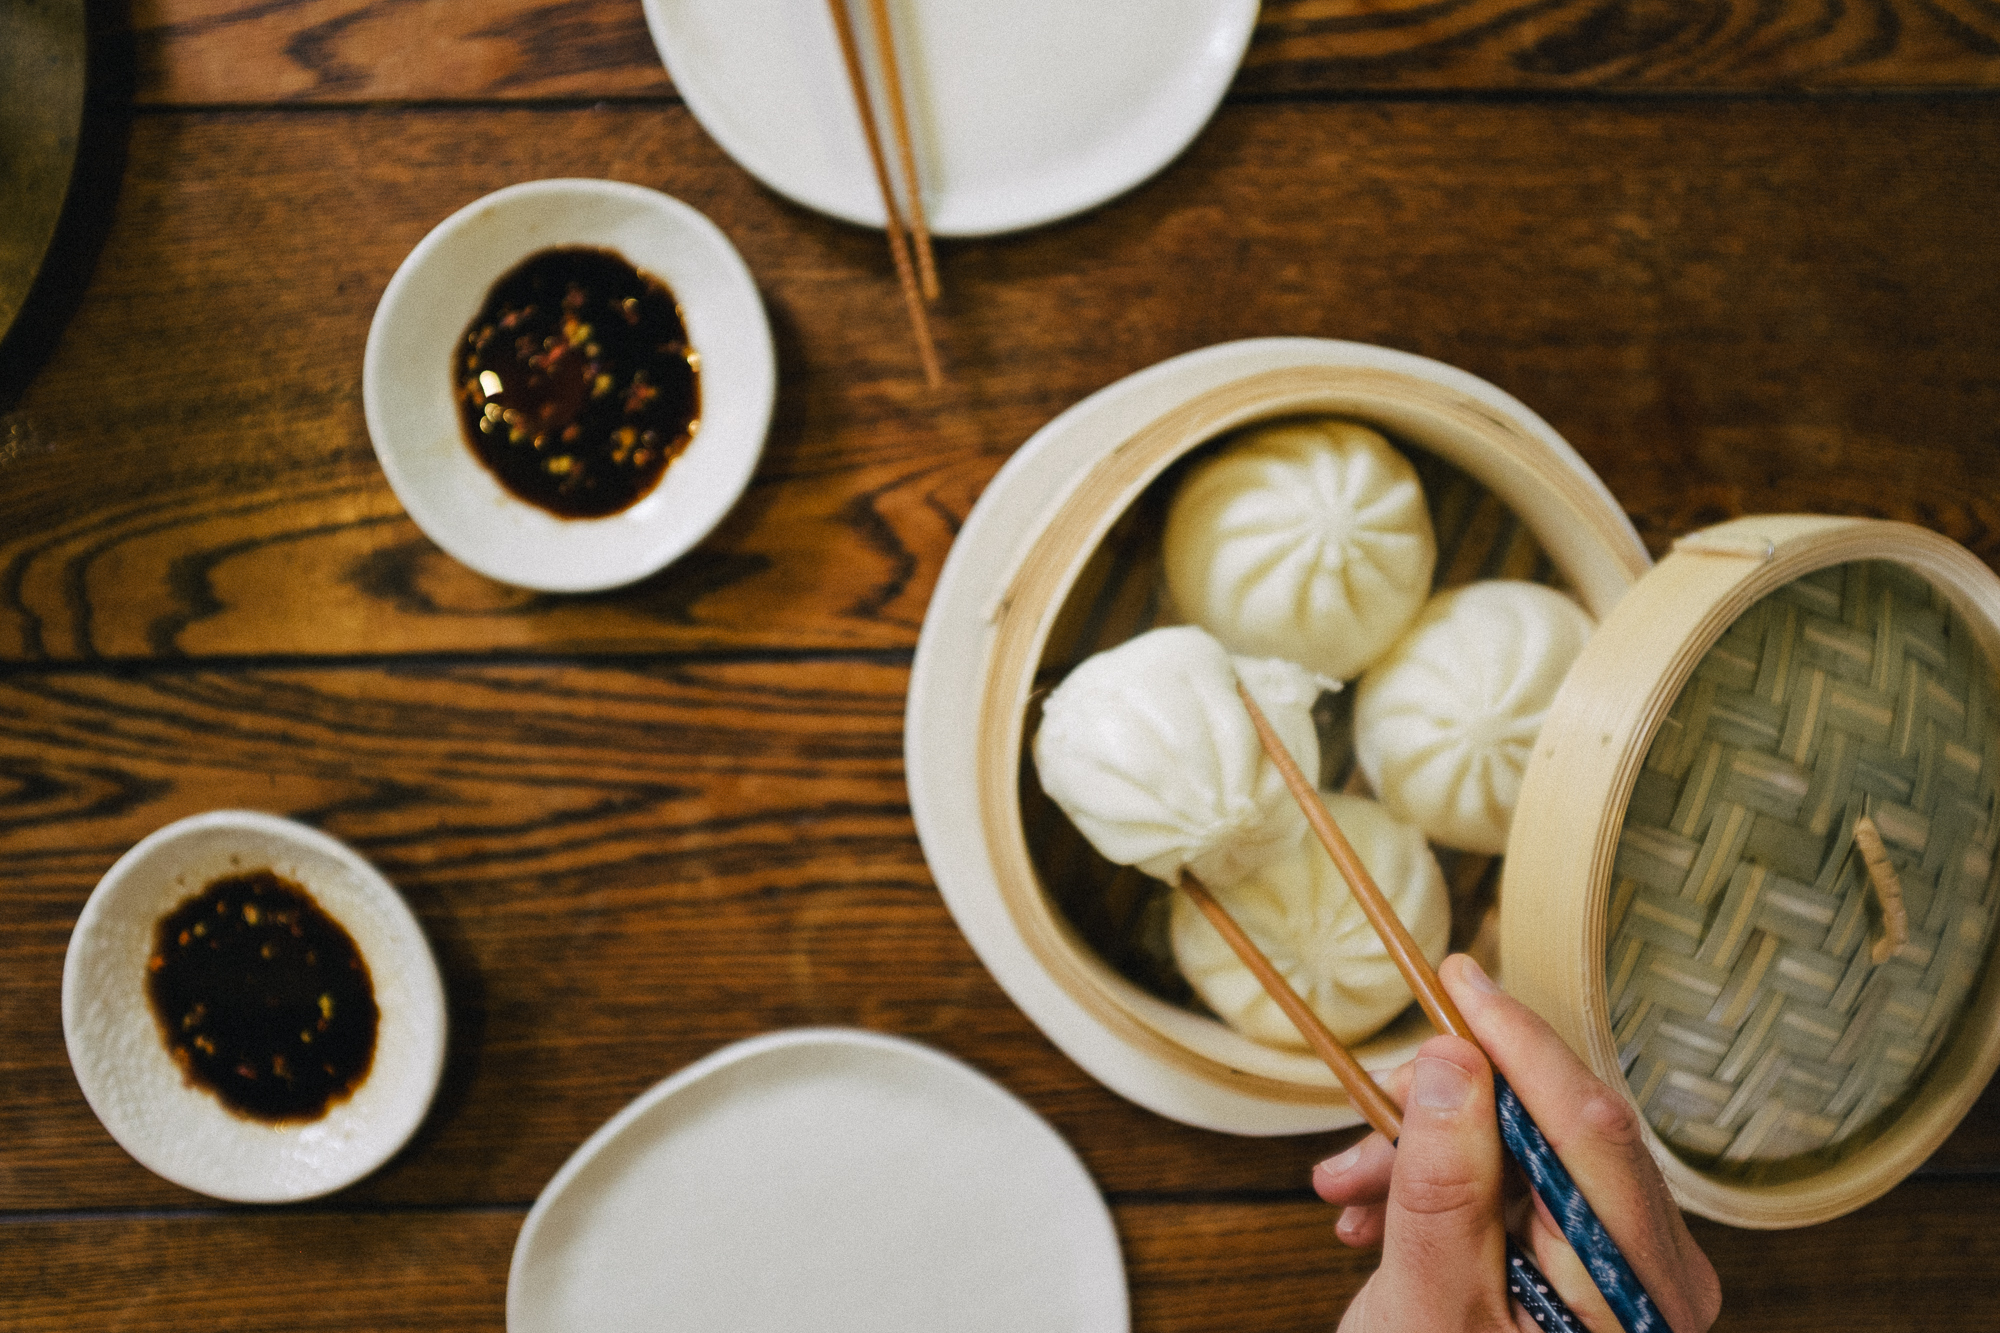 steamed buns on the table. by leonie wise